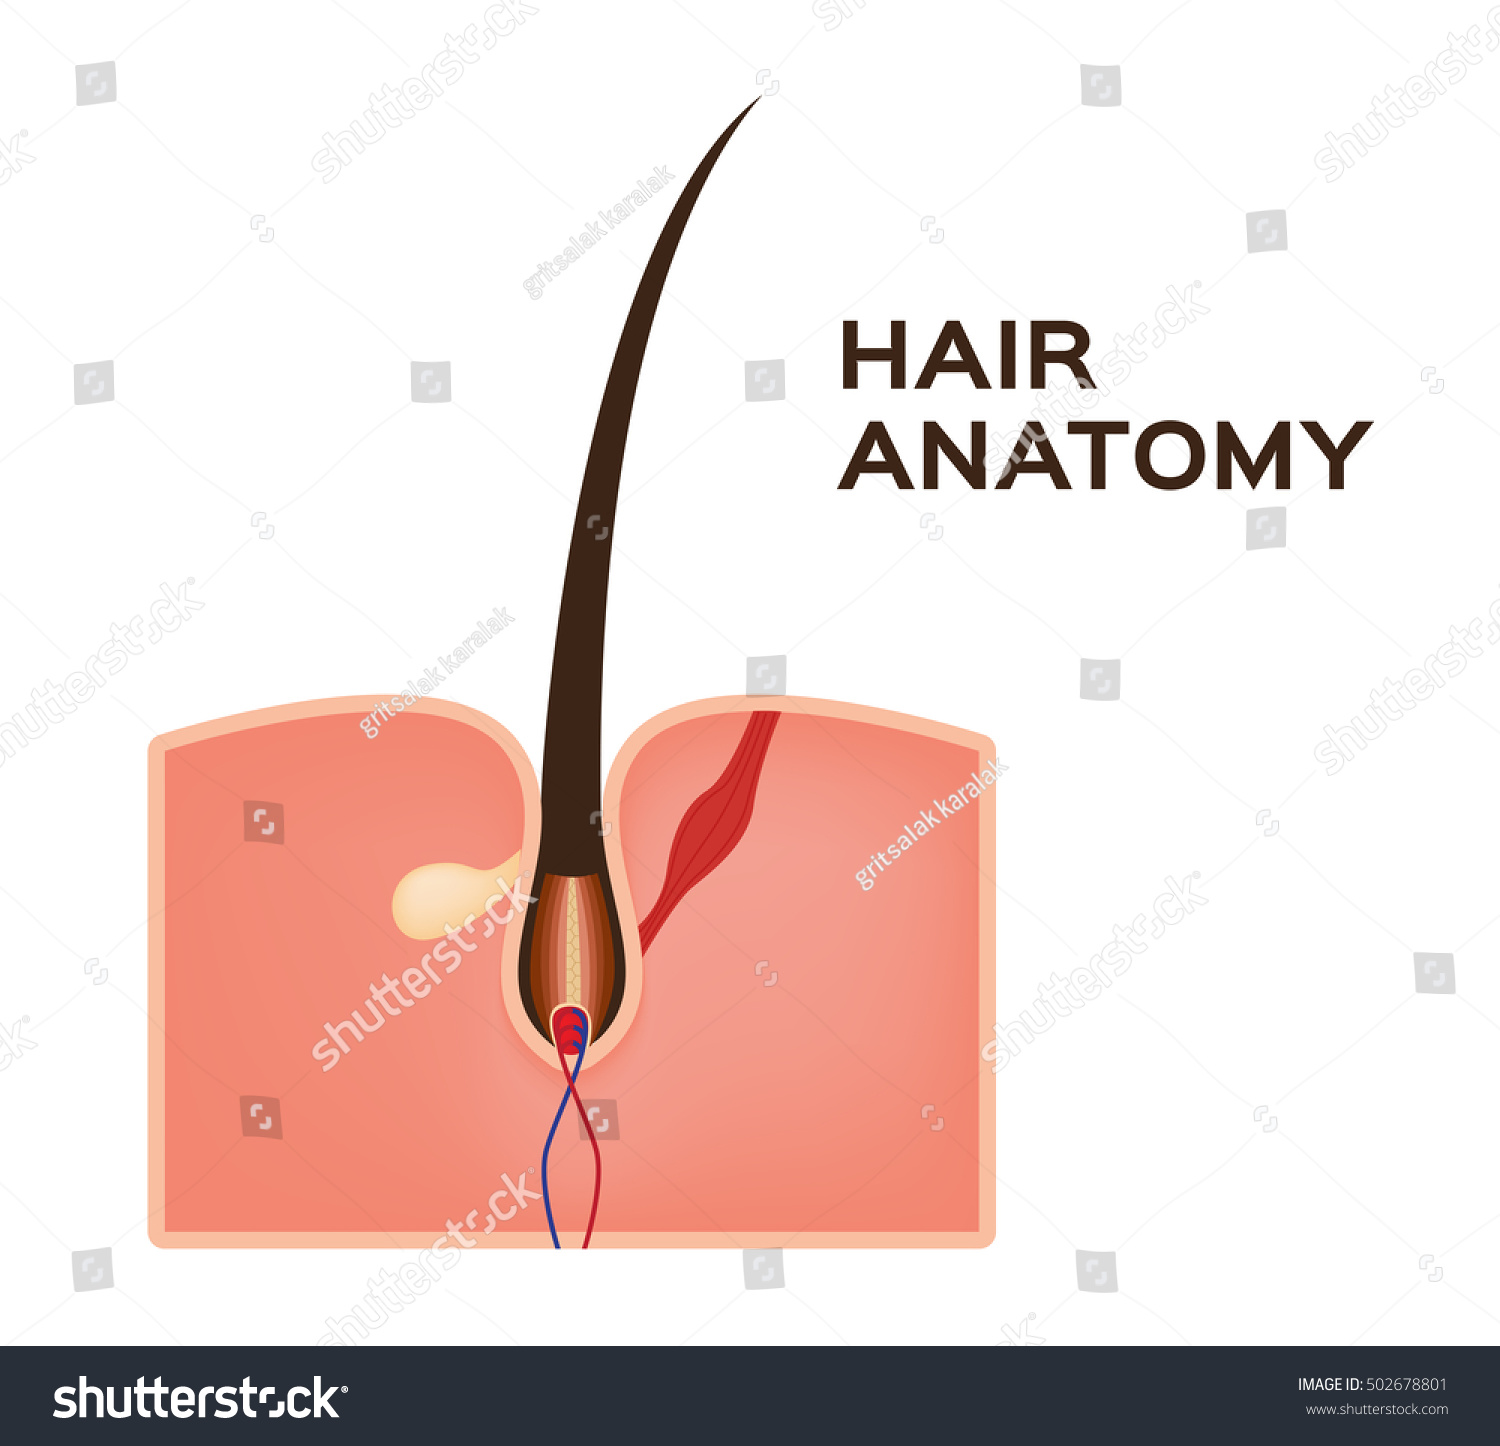 Hair Structure Medical Educational Science Vector Stock Vector ...